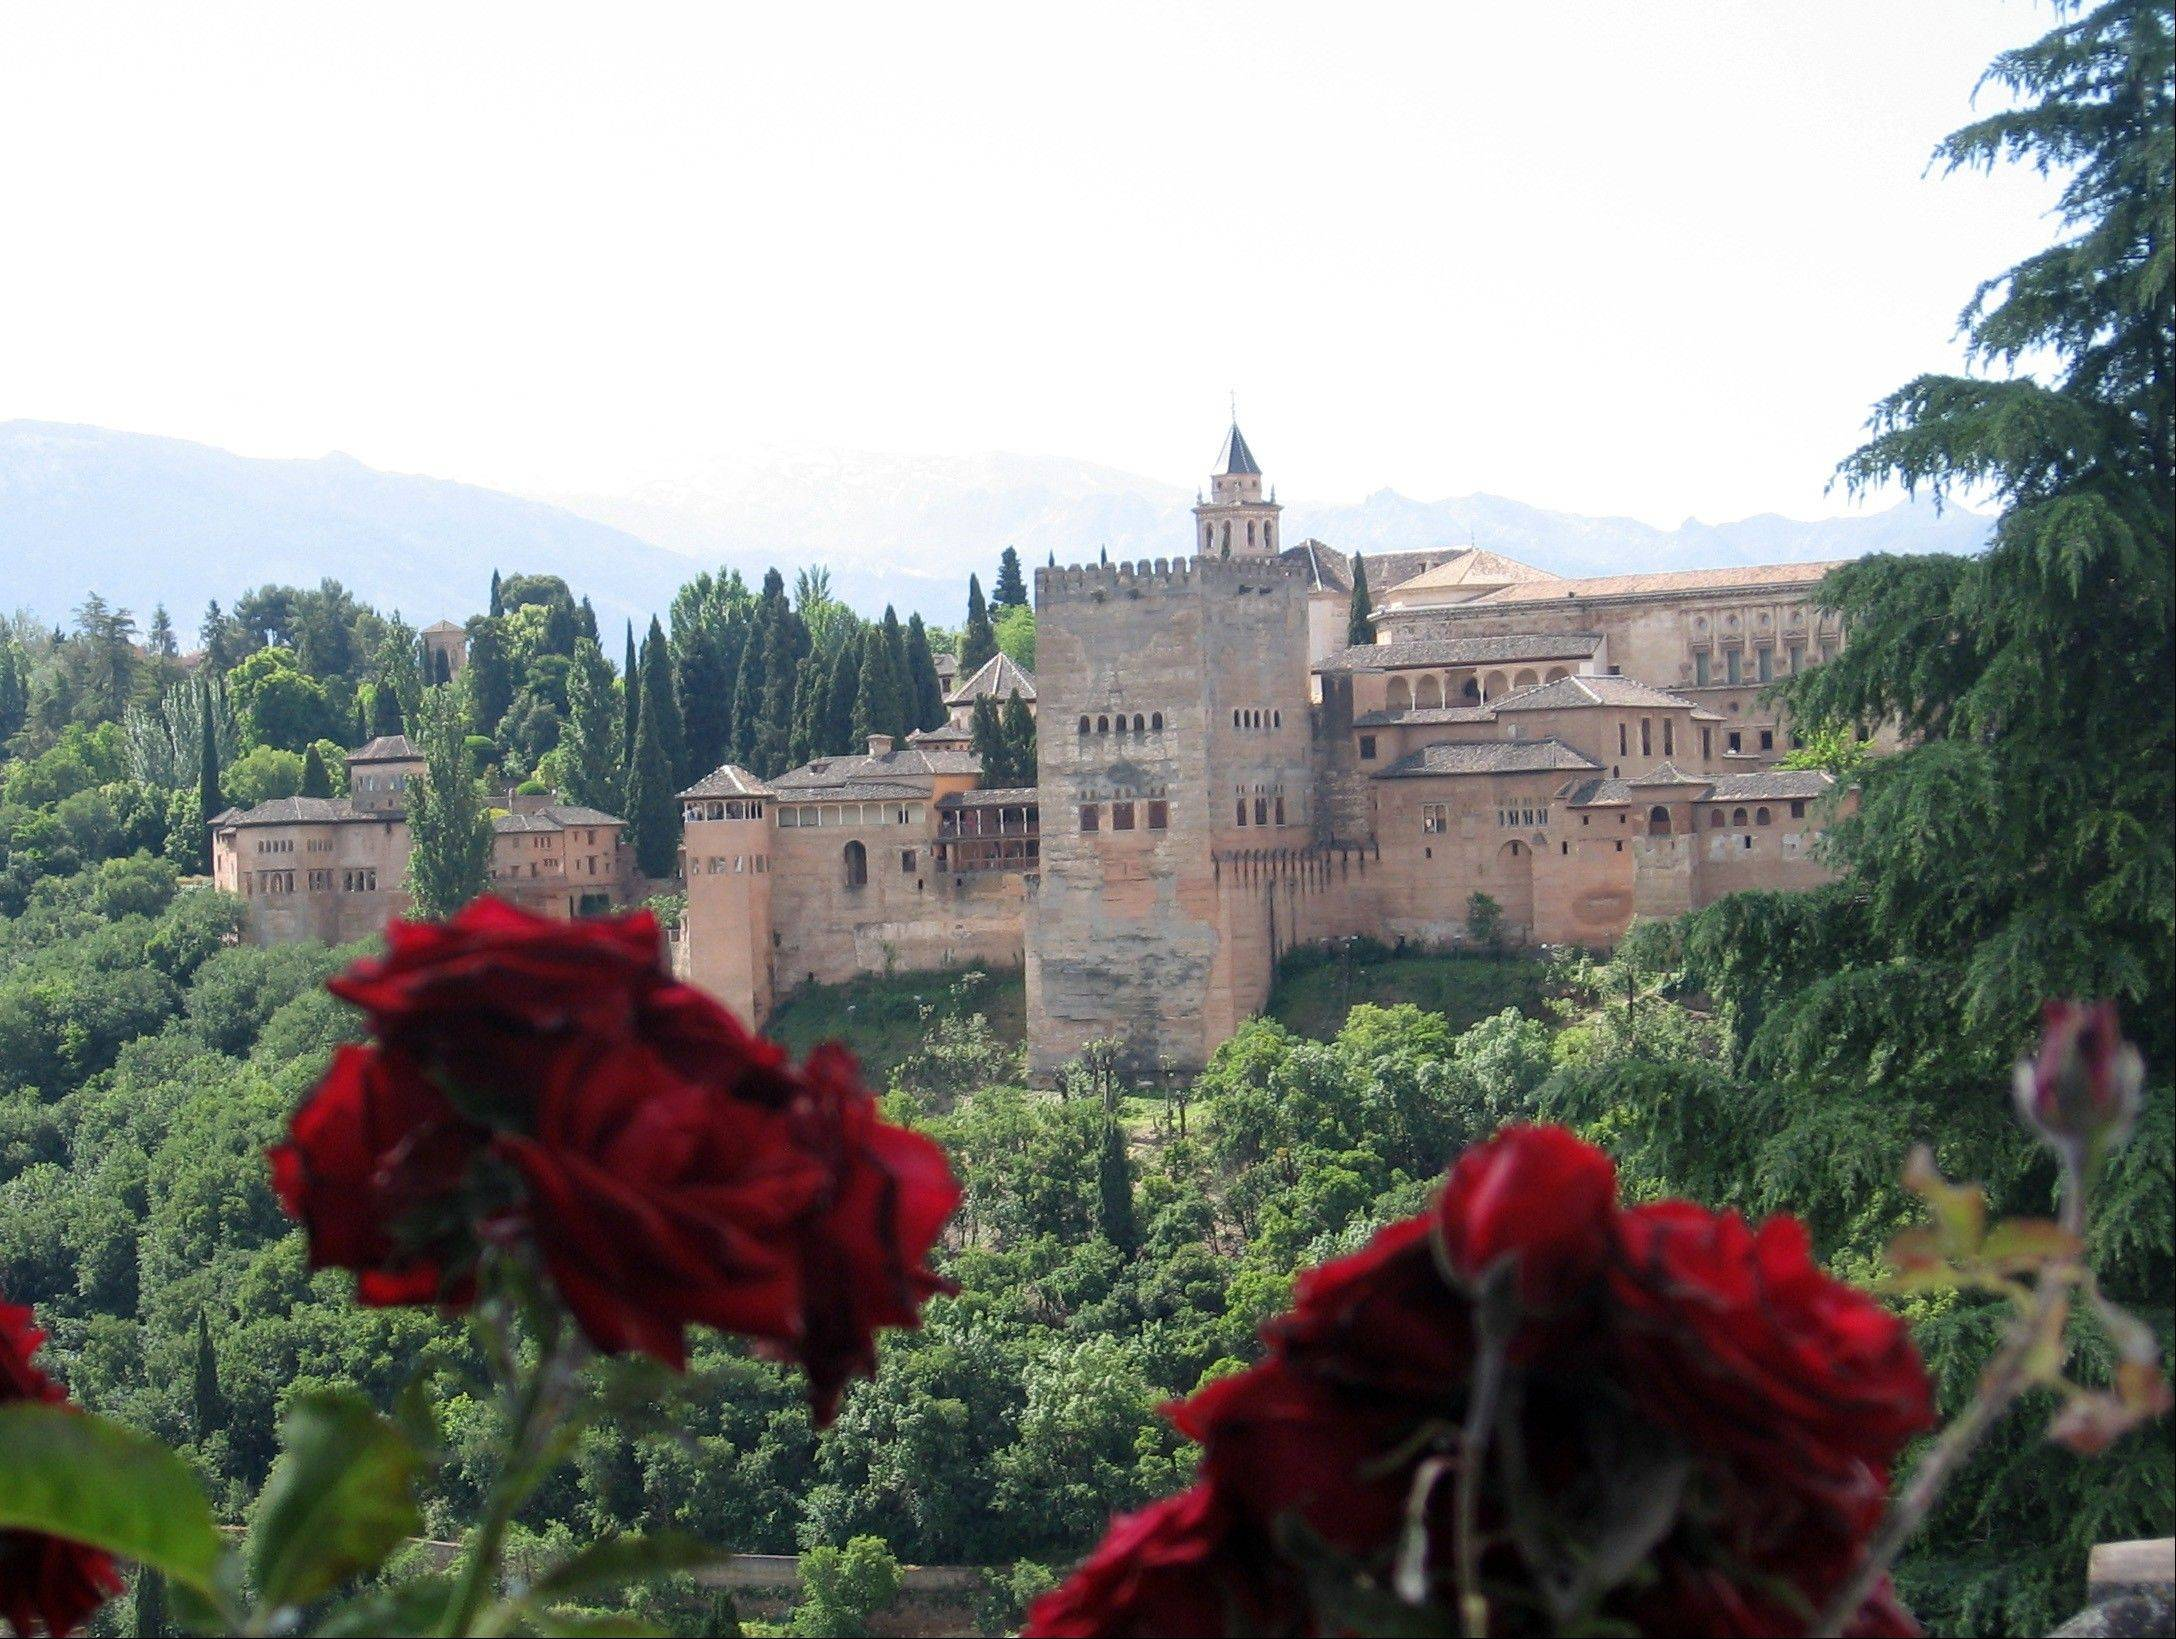 Roses in the garden of a mosque in the Albaicin neighborhood in Granada, in Andalusia, Spain, framing the Alhambra, the city�s medieval Islamic palace complex. Andalusia offers a fusion of Christian and Islamic cultures, found in architectural masterpieces and in everyday life.